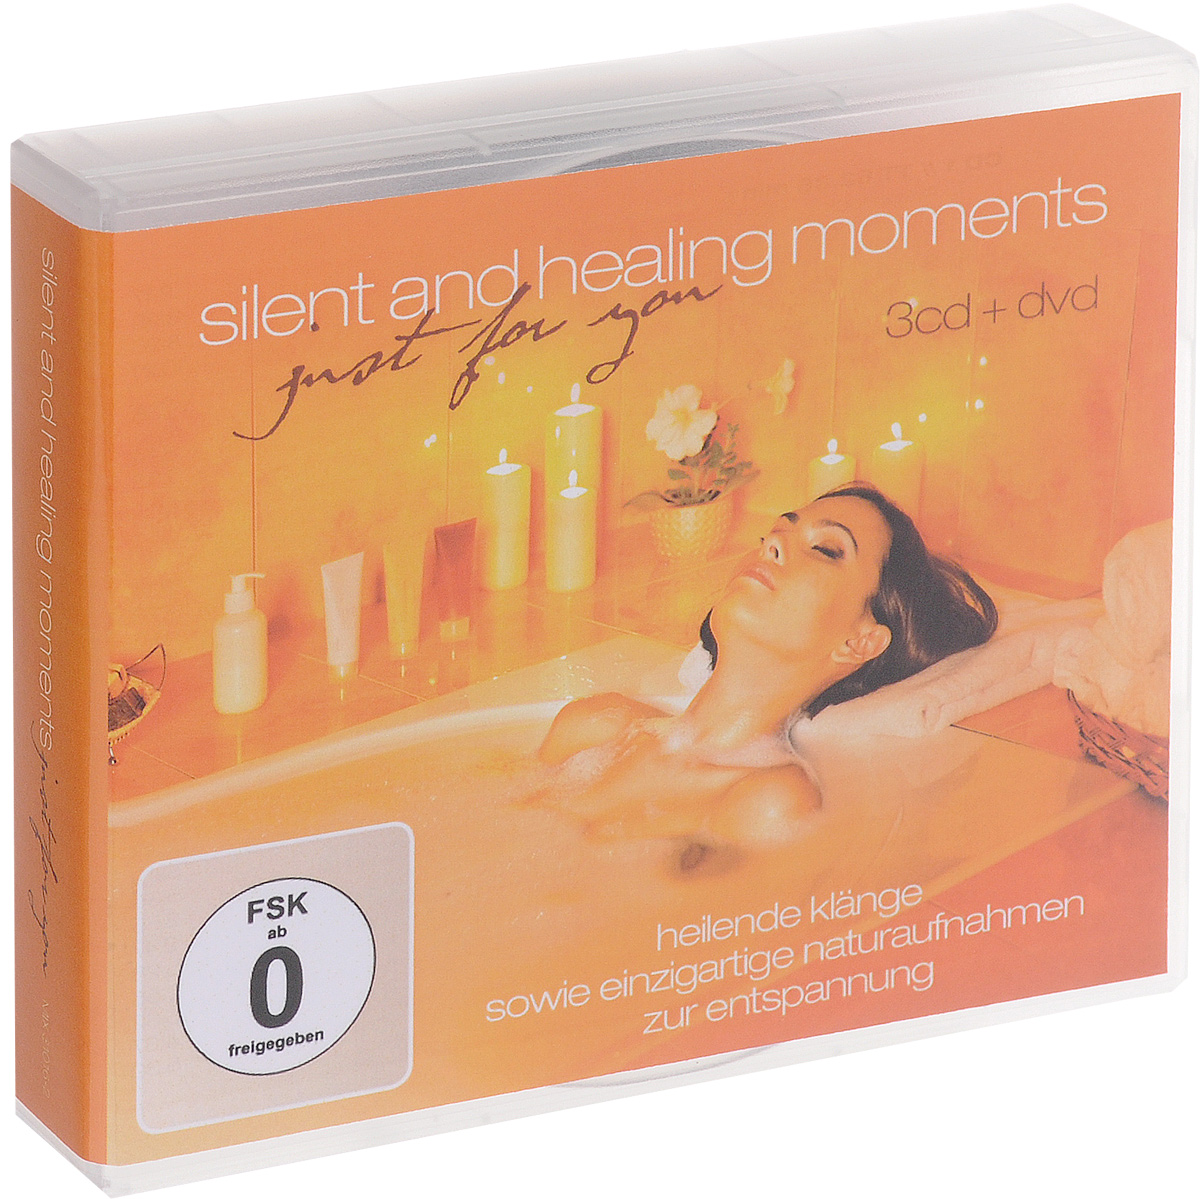 Vocal Cosmos Silent And Healing Moments Just For You (3 CD + DVD) цена